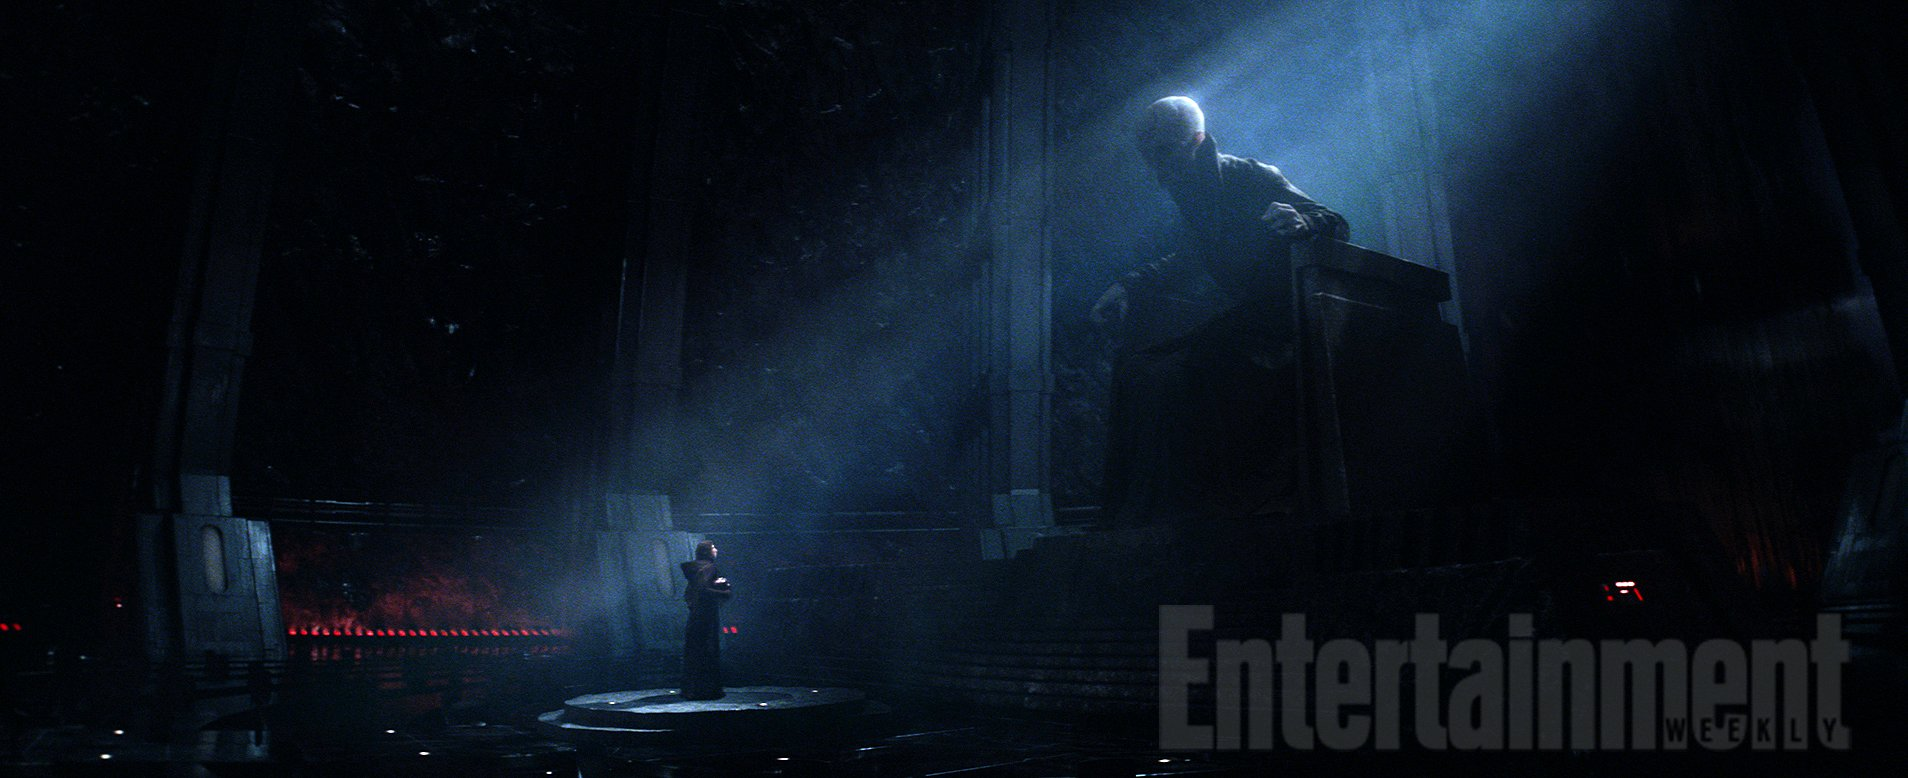 First Official Images Of Snoke And Maz Kanata From Star Wars: The Force Awakens